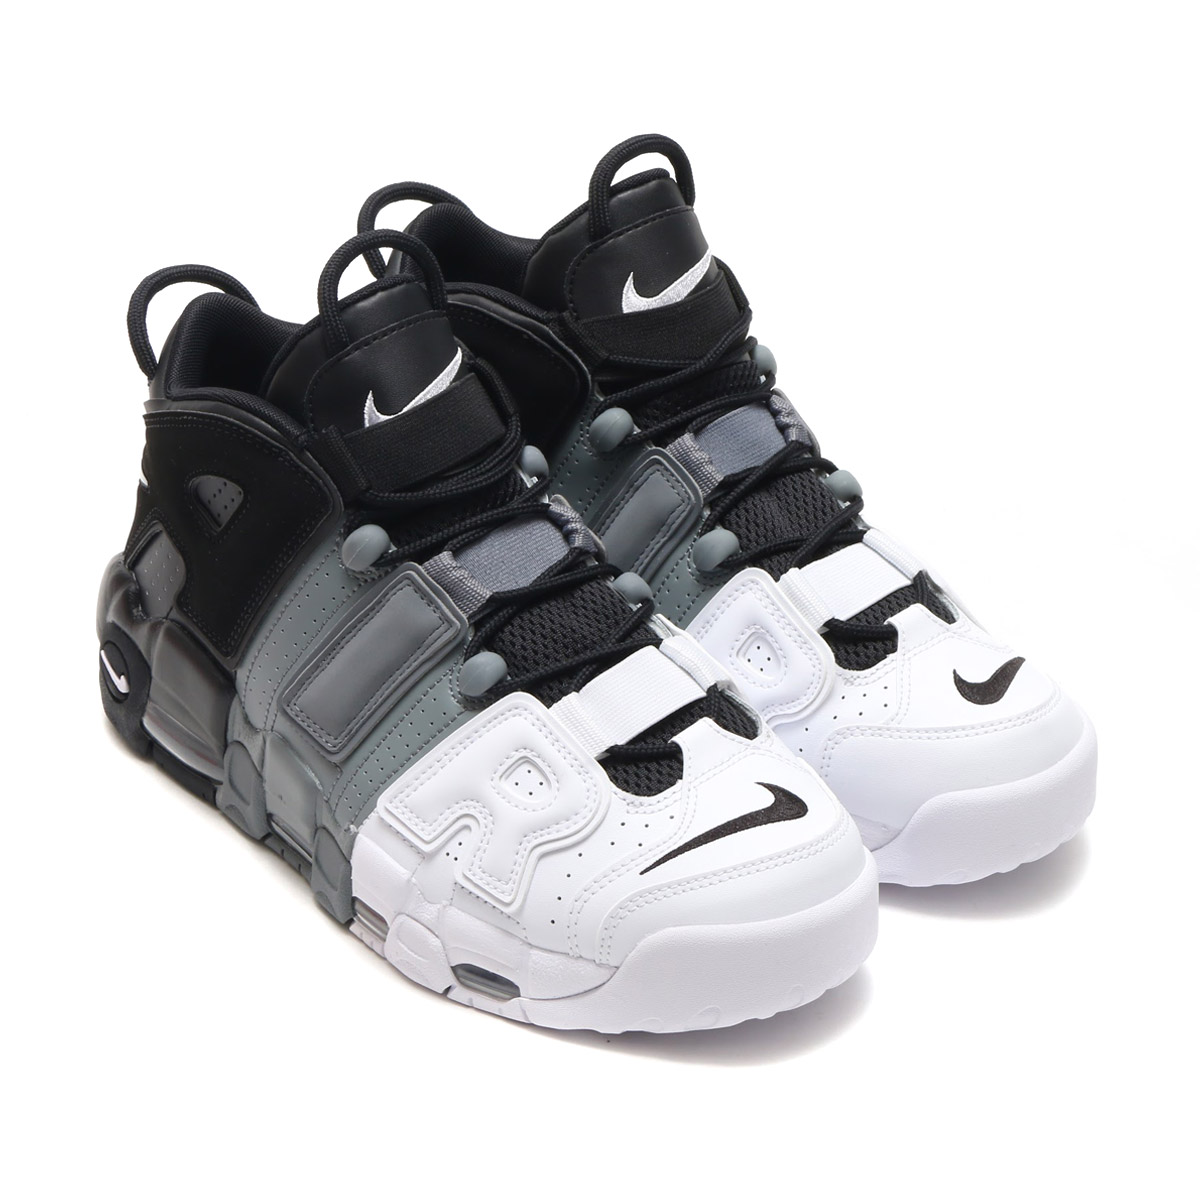 Nike air more uptempo 96 nike more up tempo 96 black